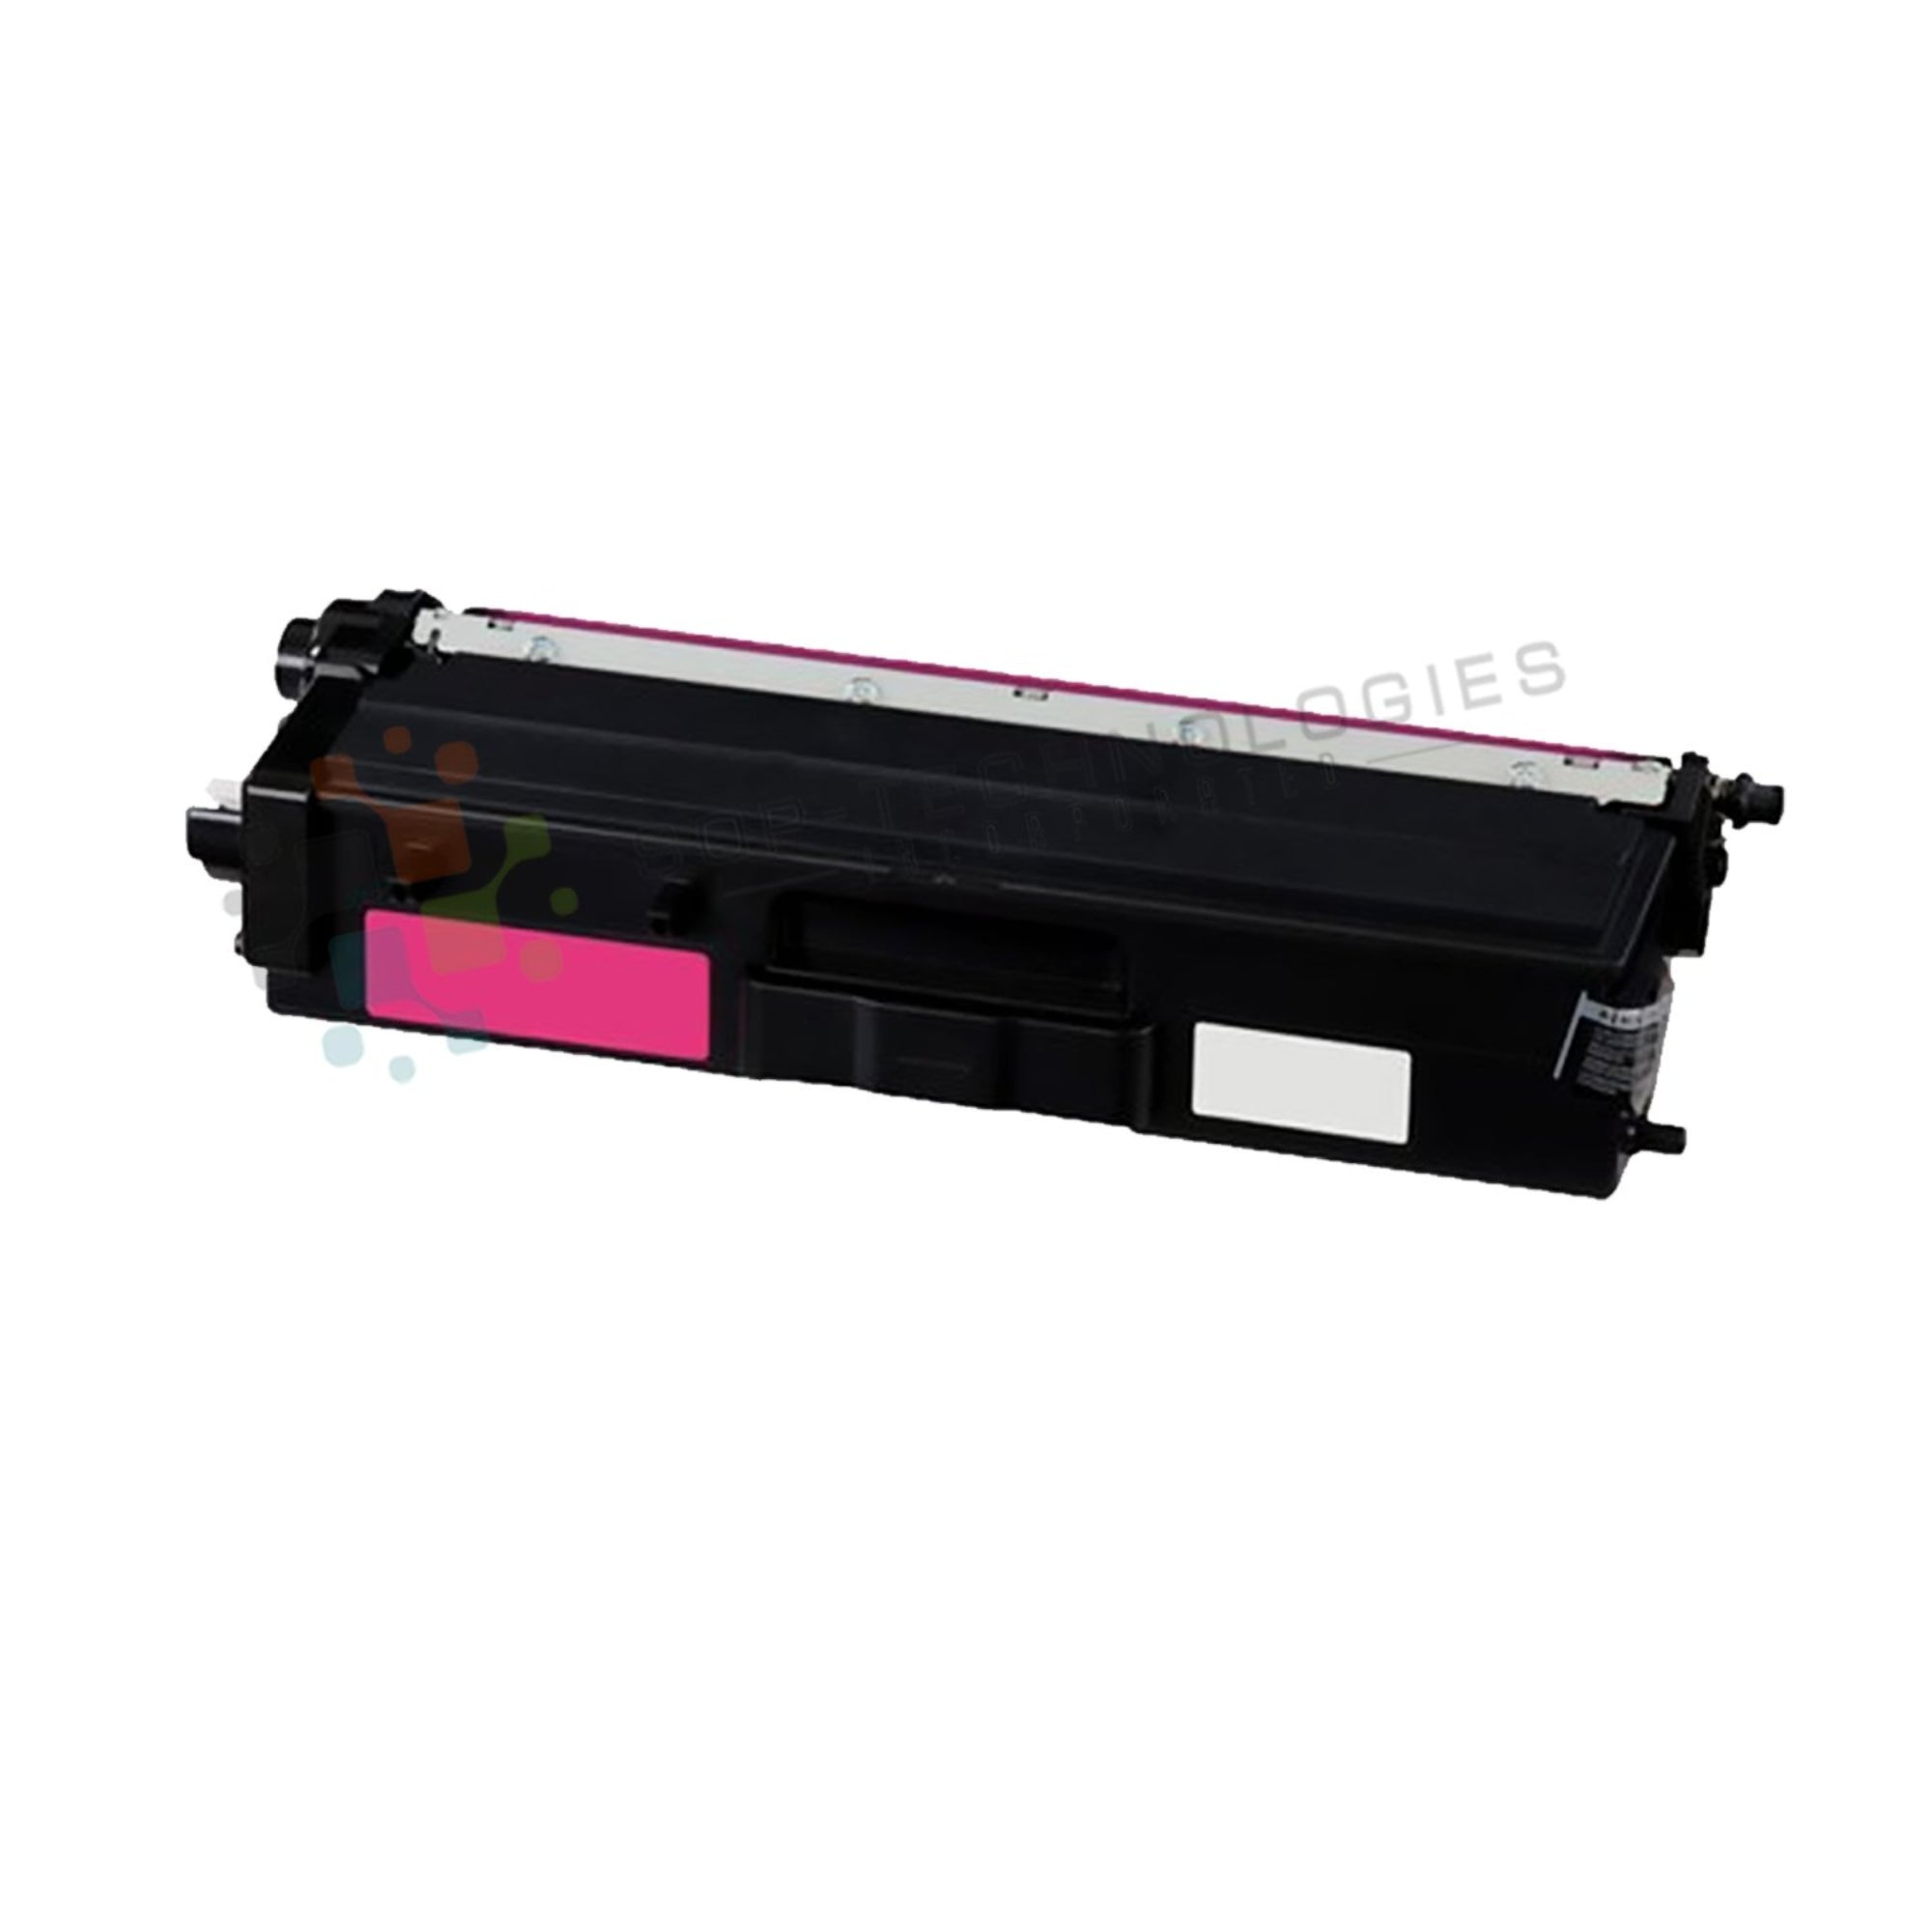 4pk Compatible Toner Cartridge Replacement for Brother TN-433 (CMYK) - SOP-TECHNOLOGIES, INC.